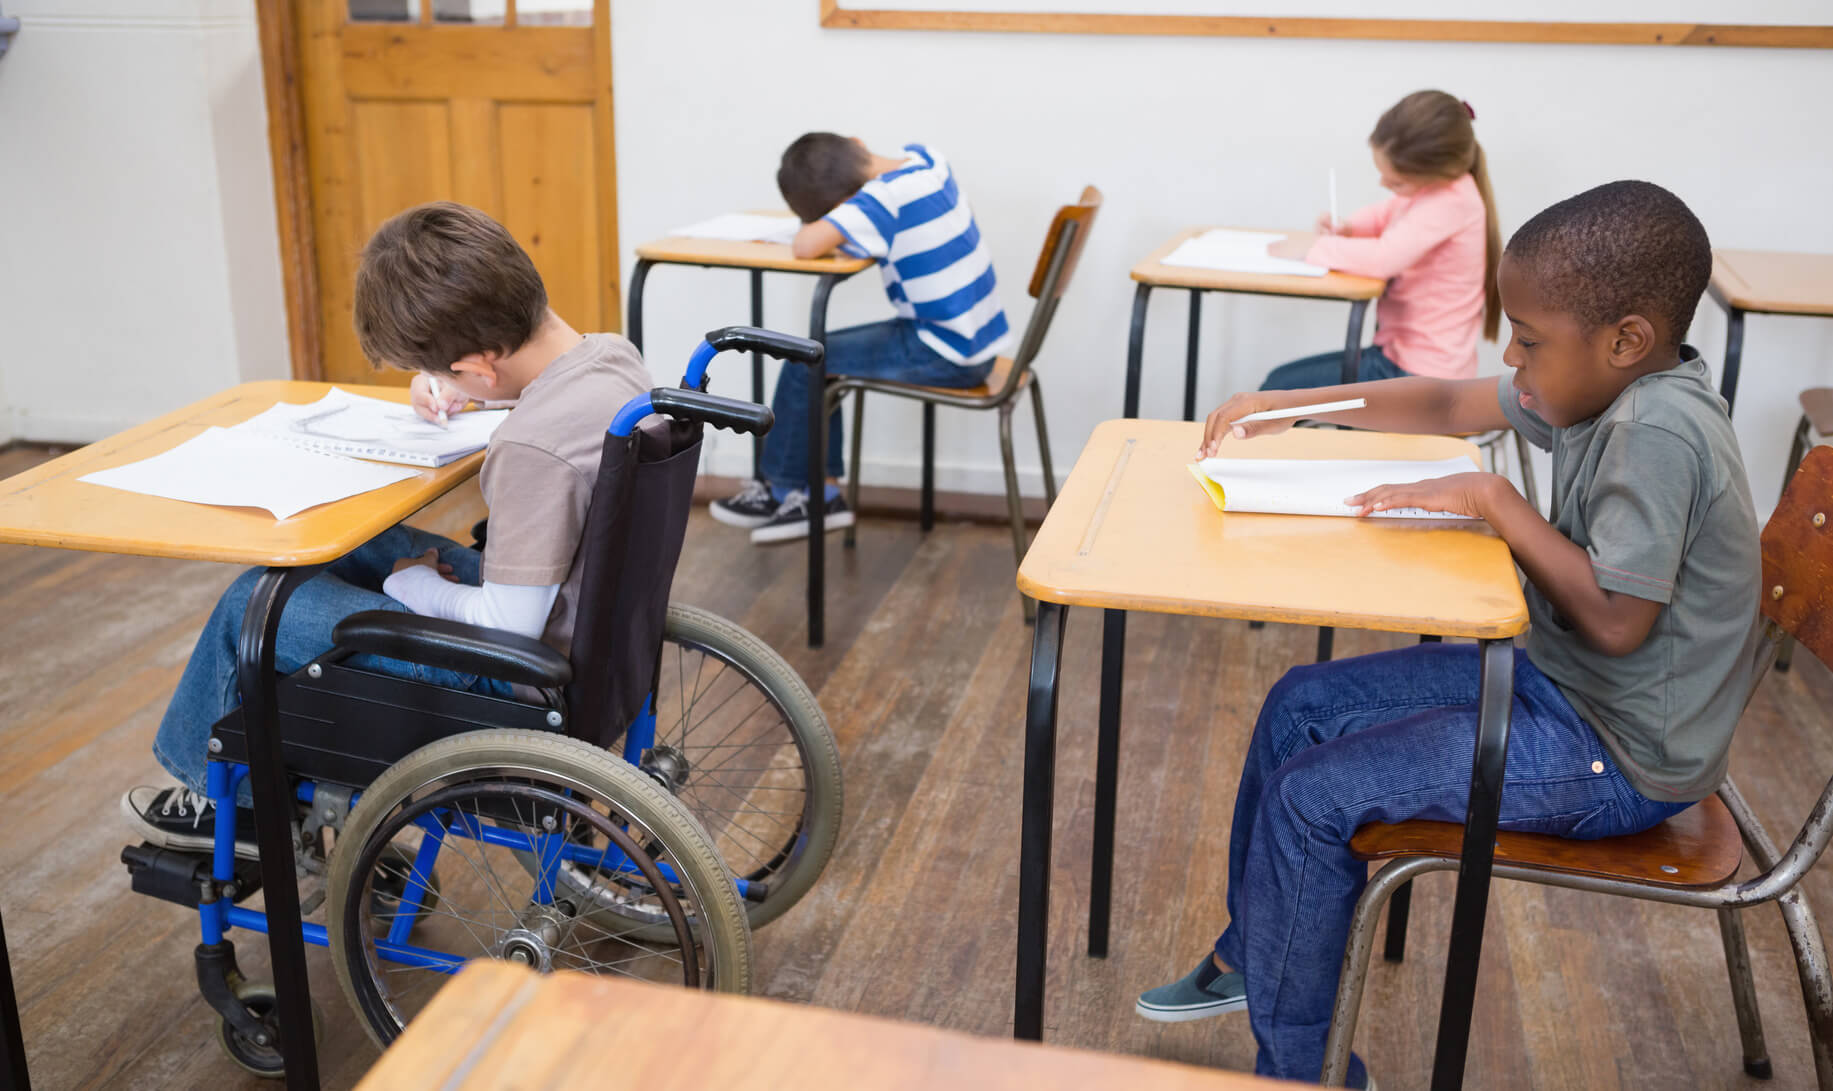 Classroom Design For Disabled Students : Hr aspects magazine how can schools avoid disability